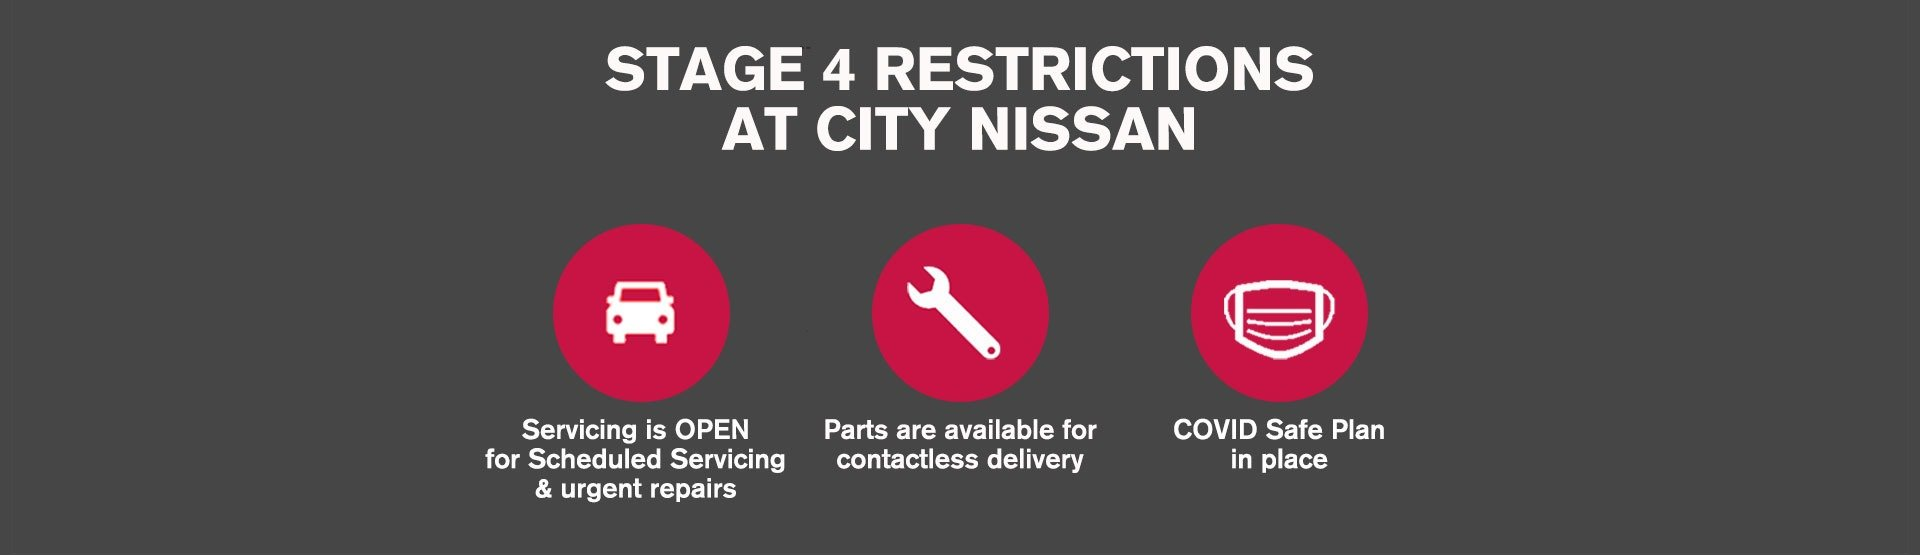 Stage 4 Restrictions at City Nissan